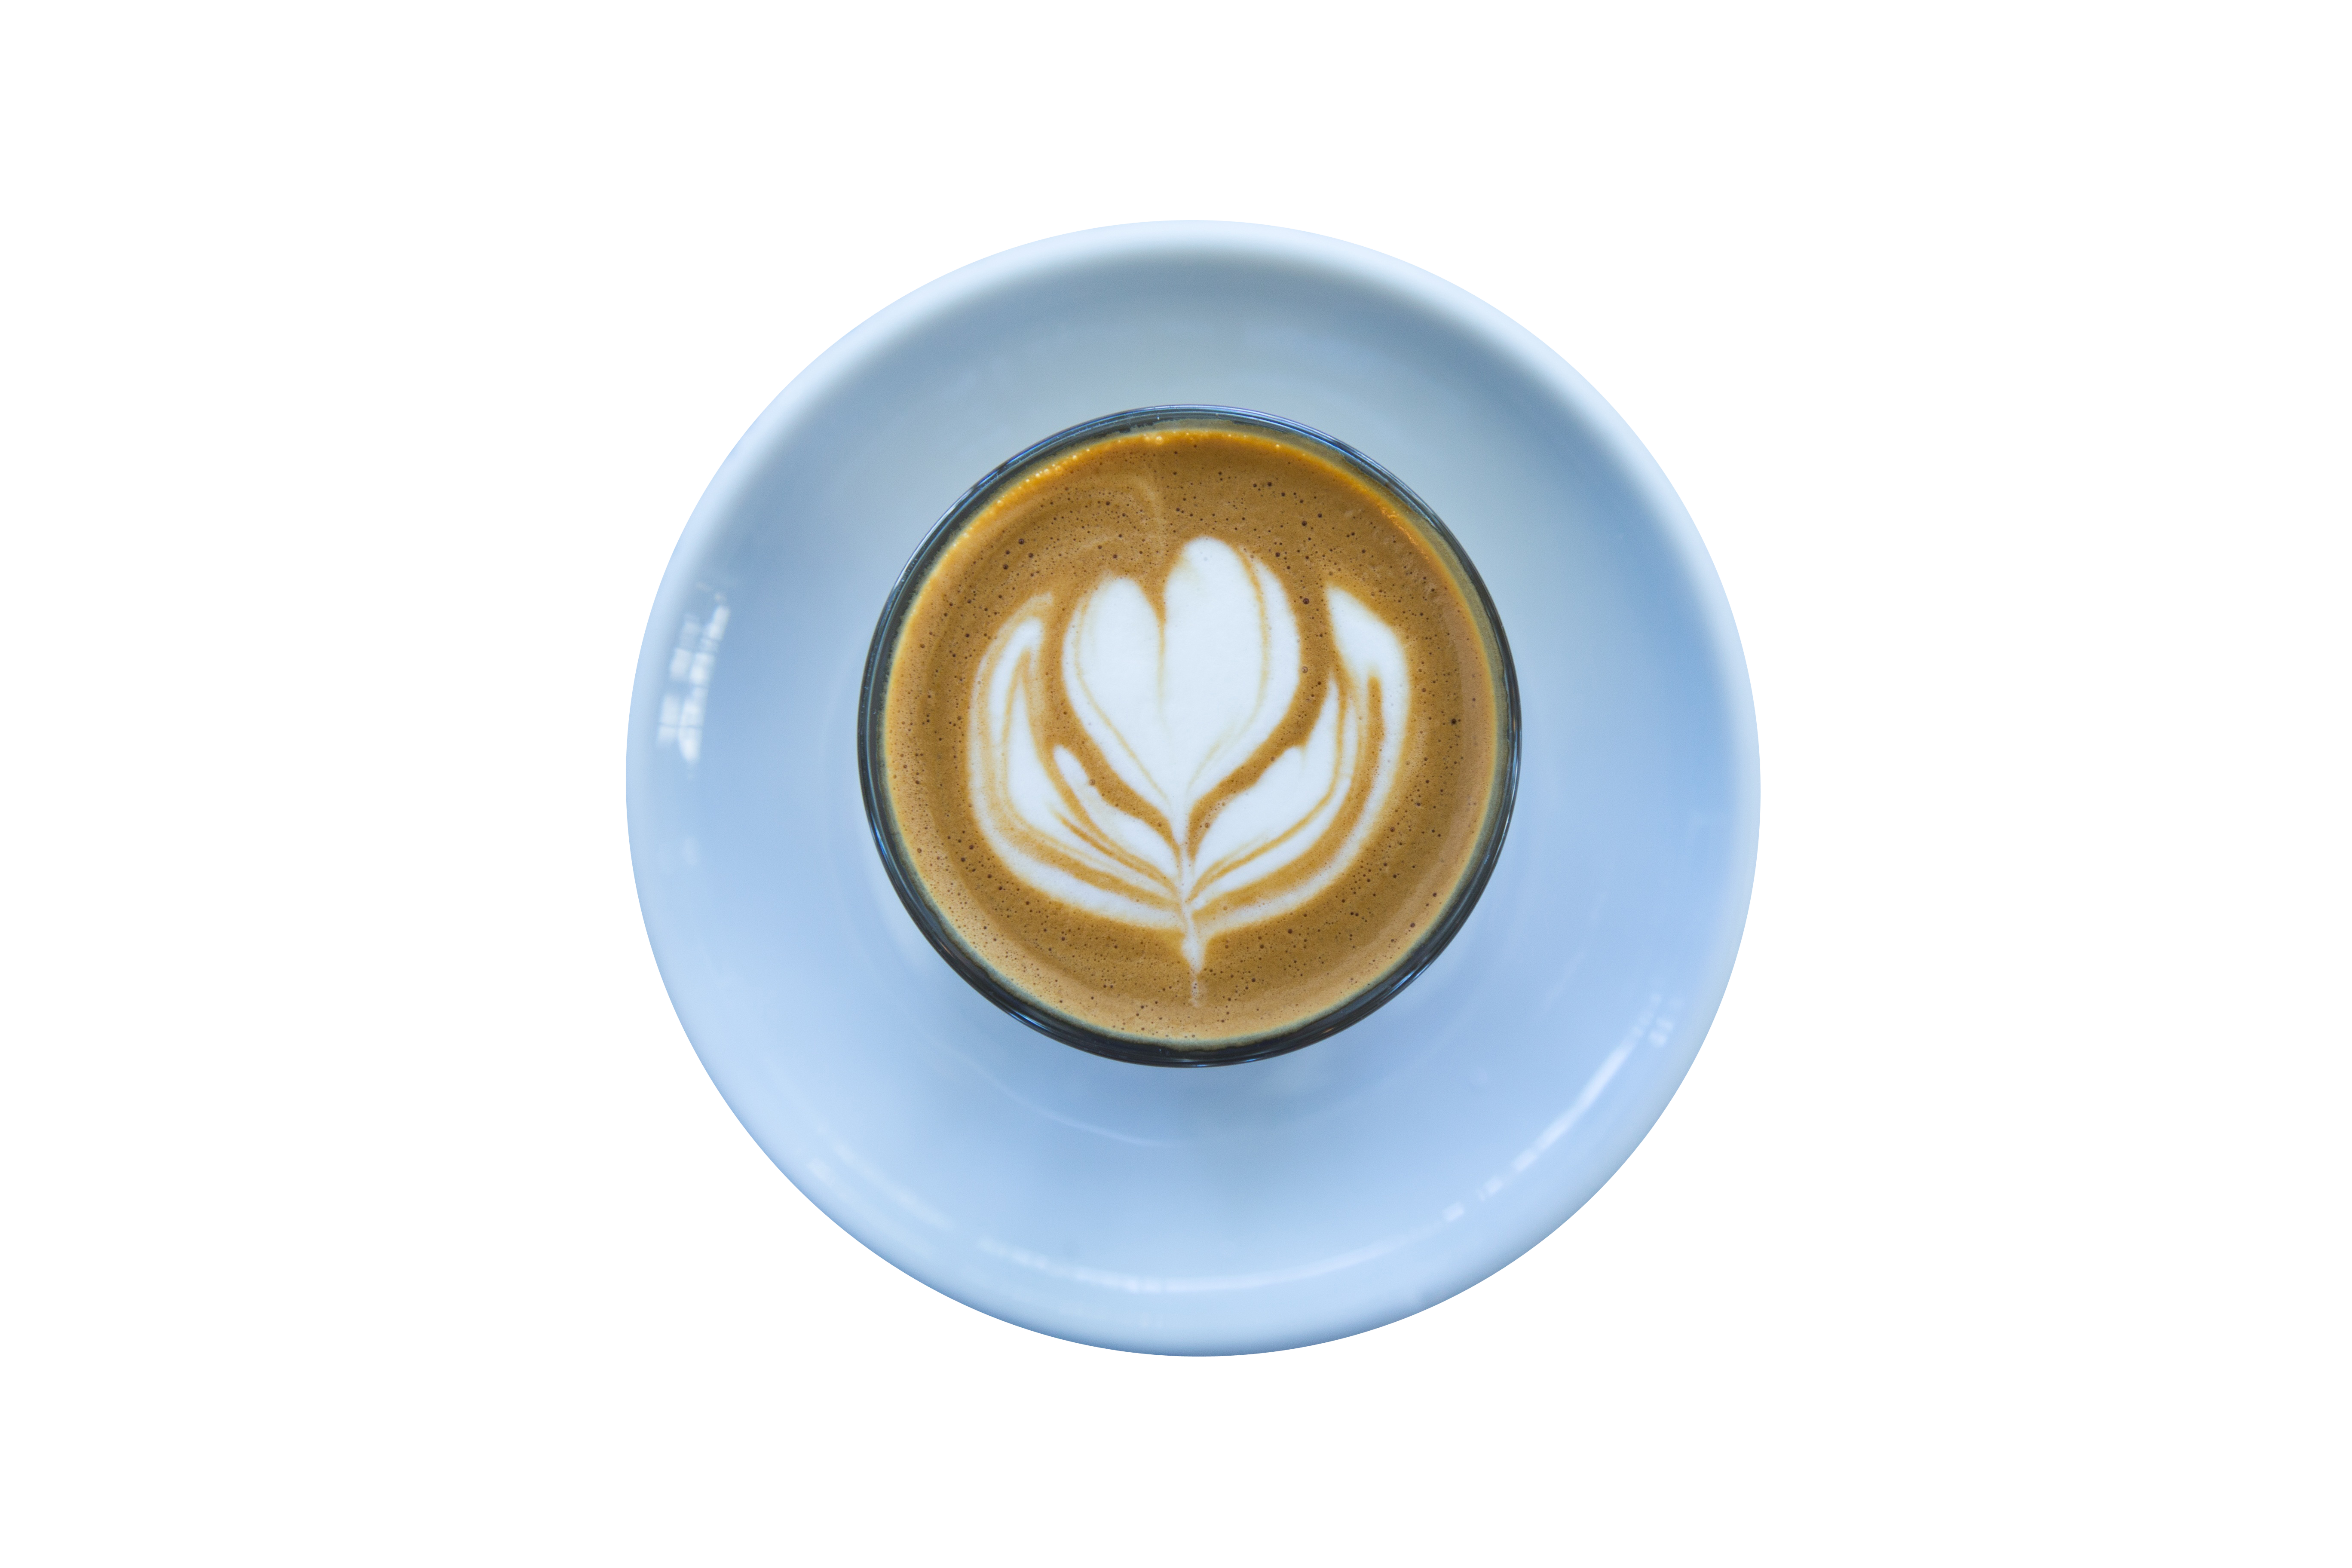 Heart Design in Coffee PNG Image